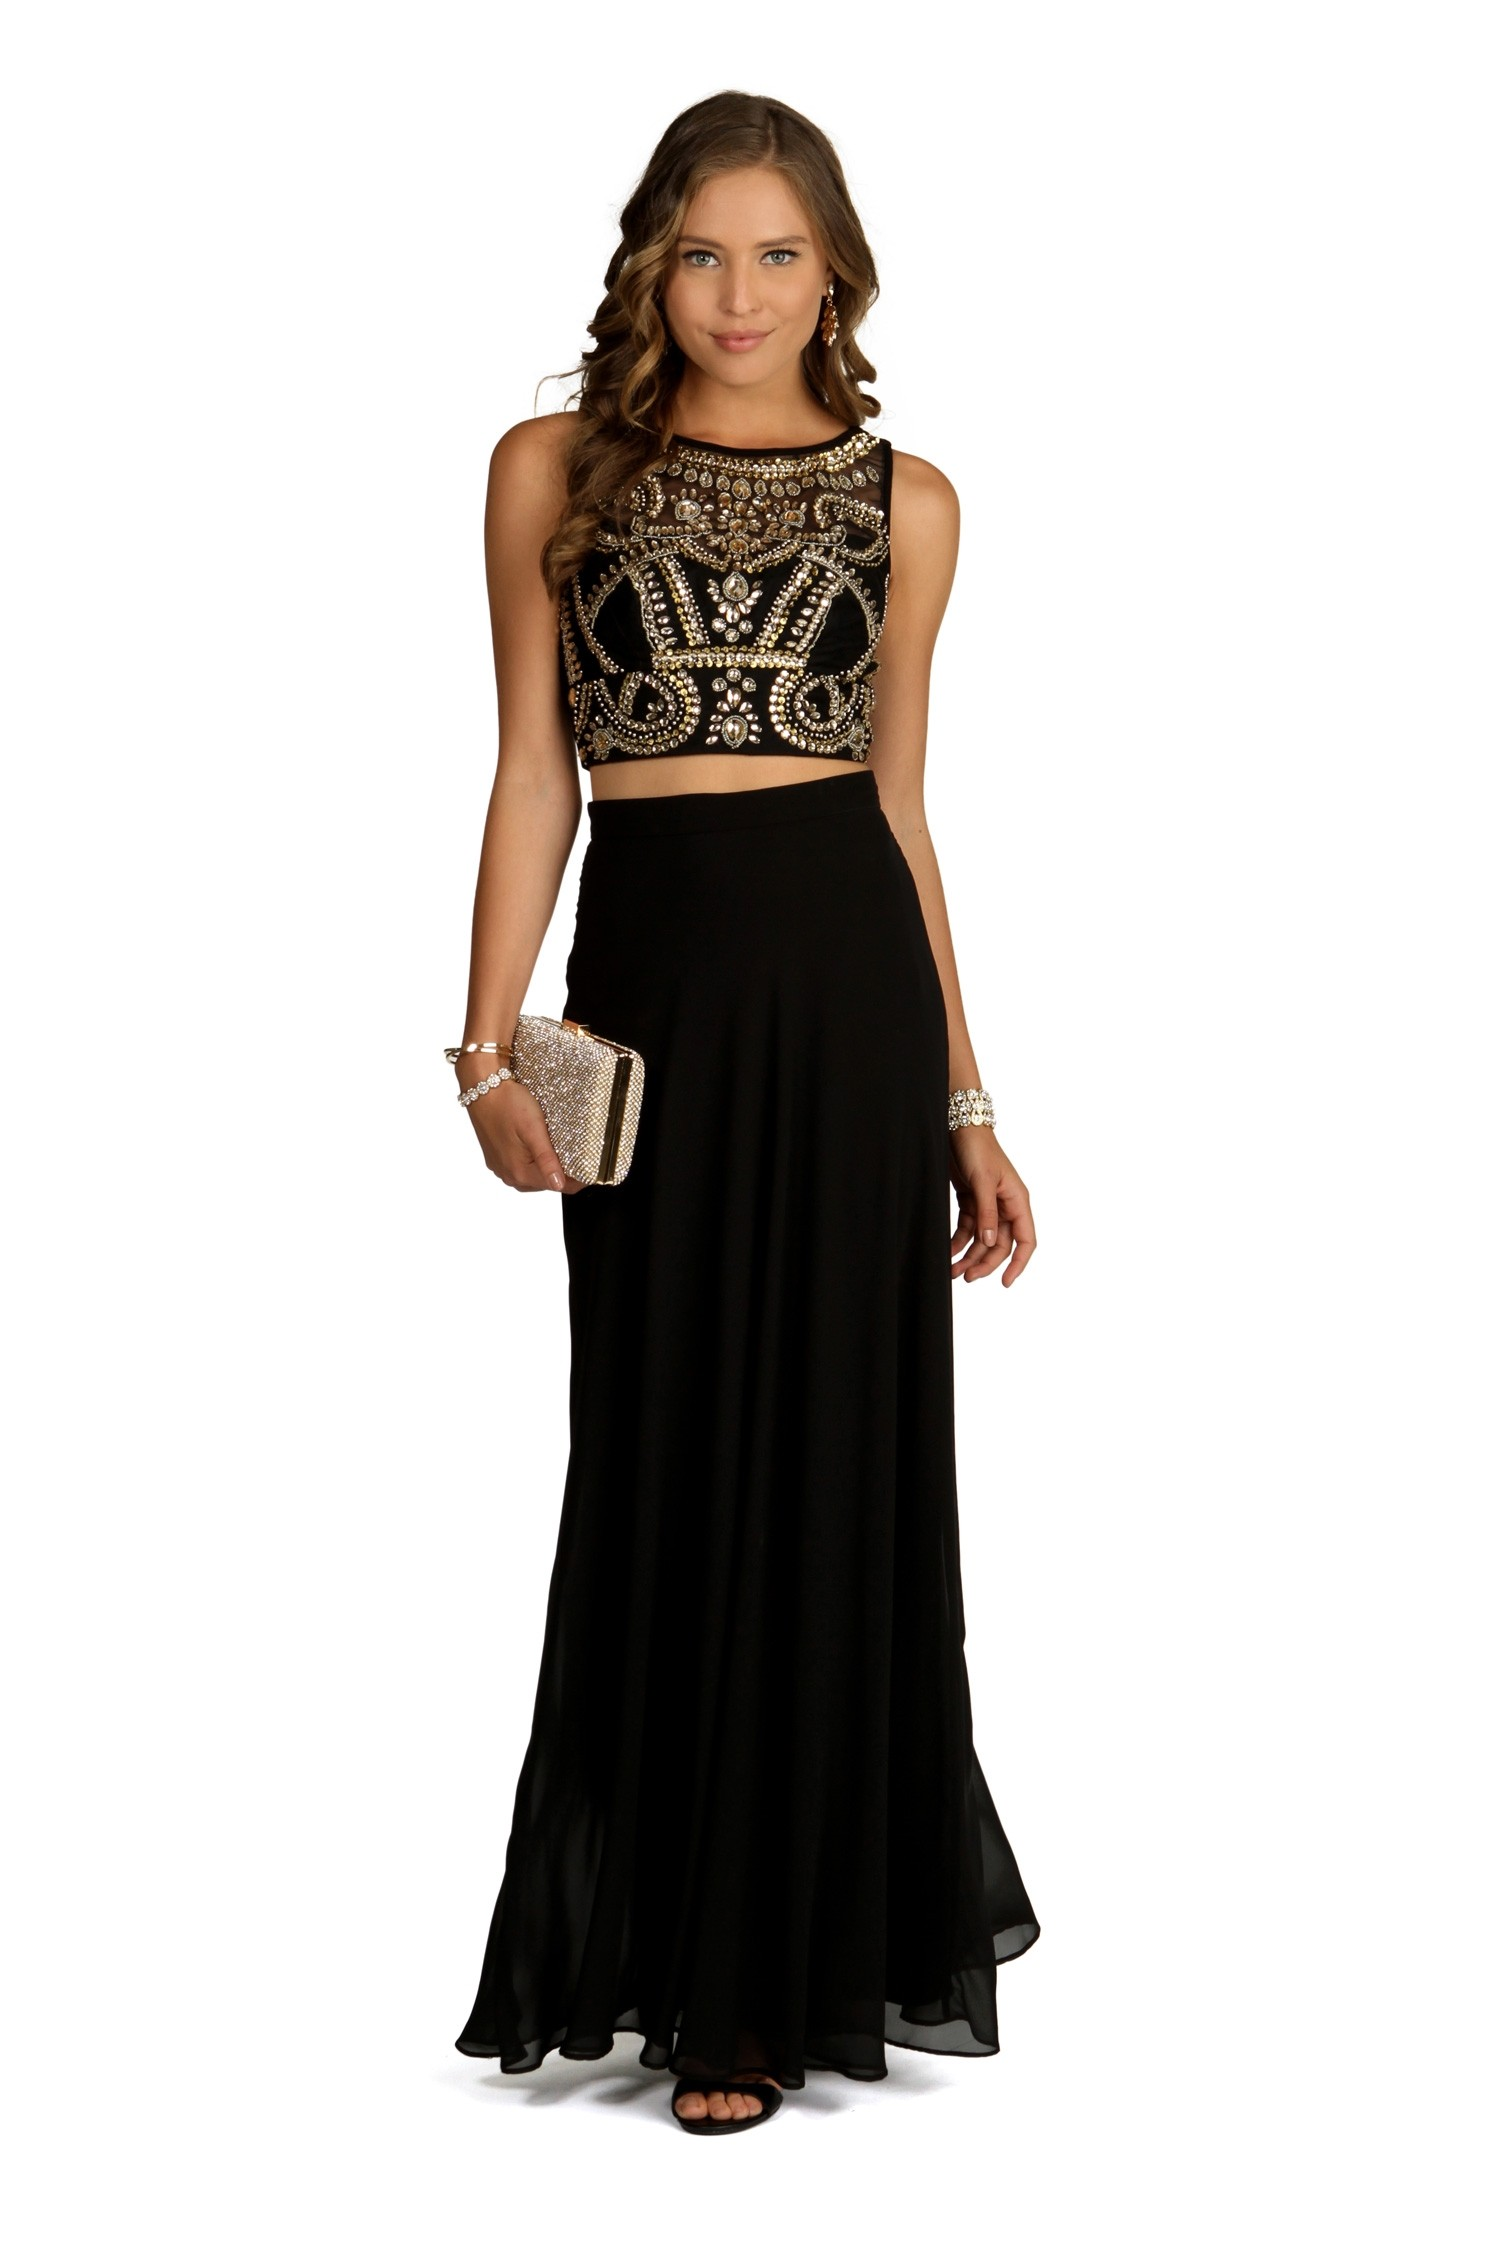 Why you can never go wrong with a black prom dress